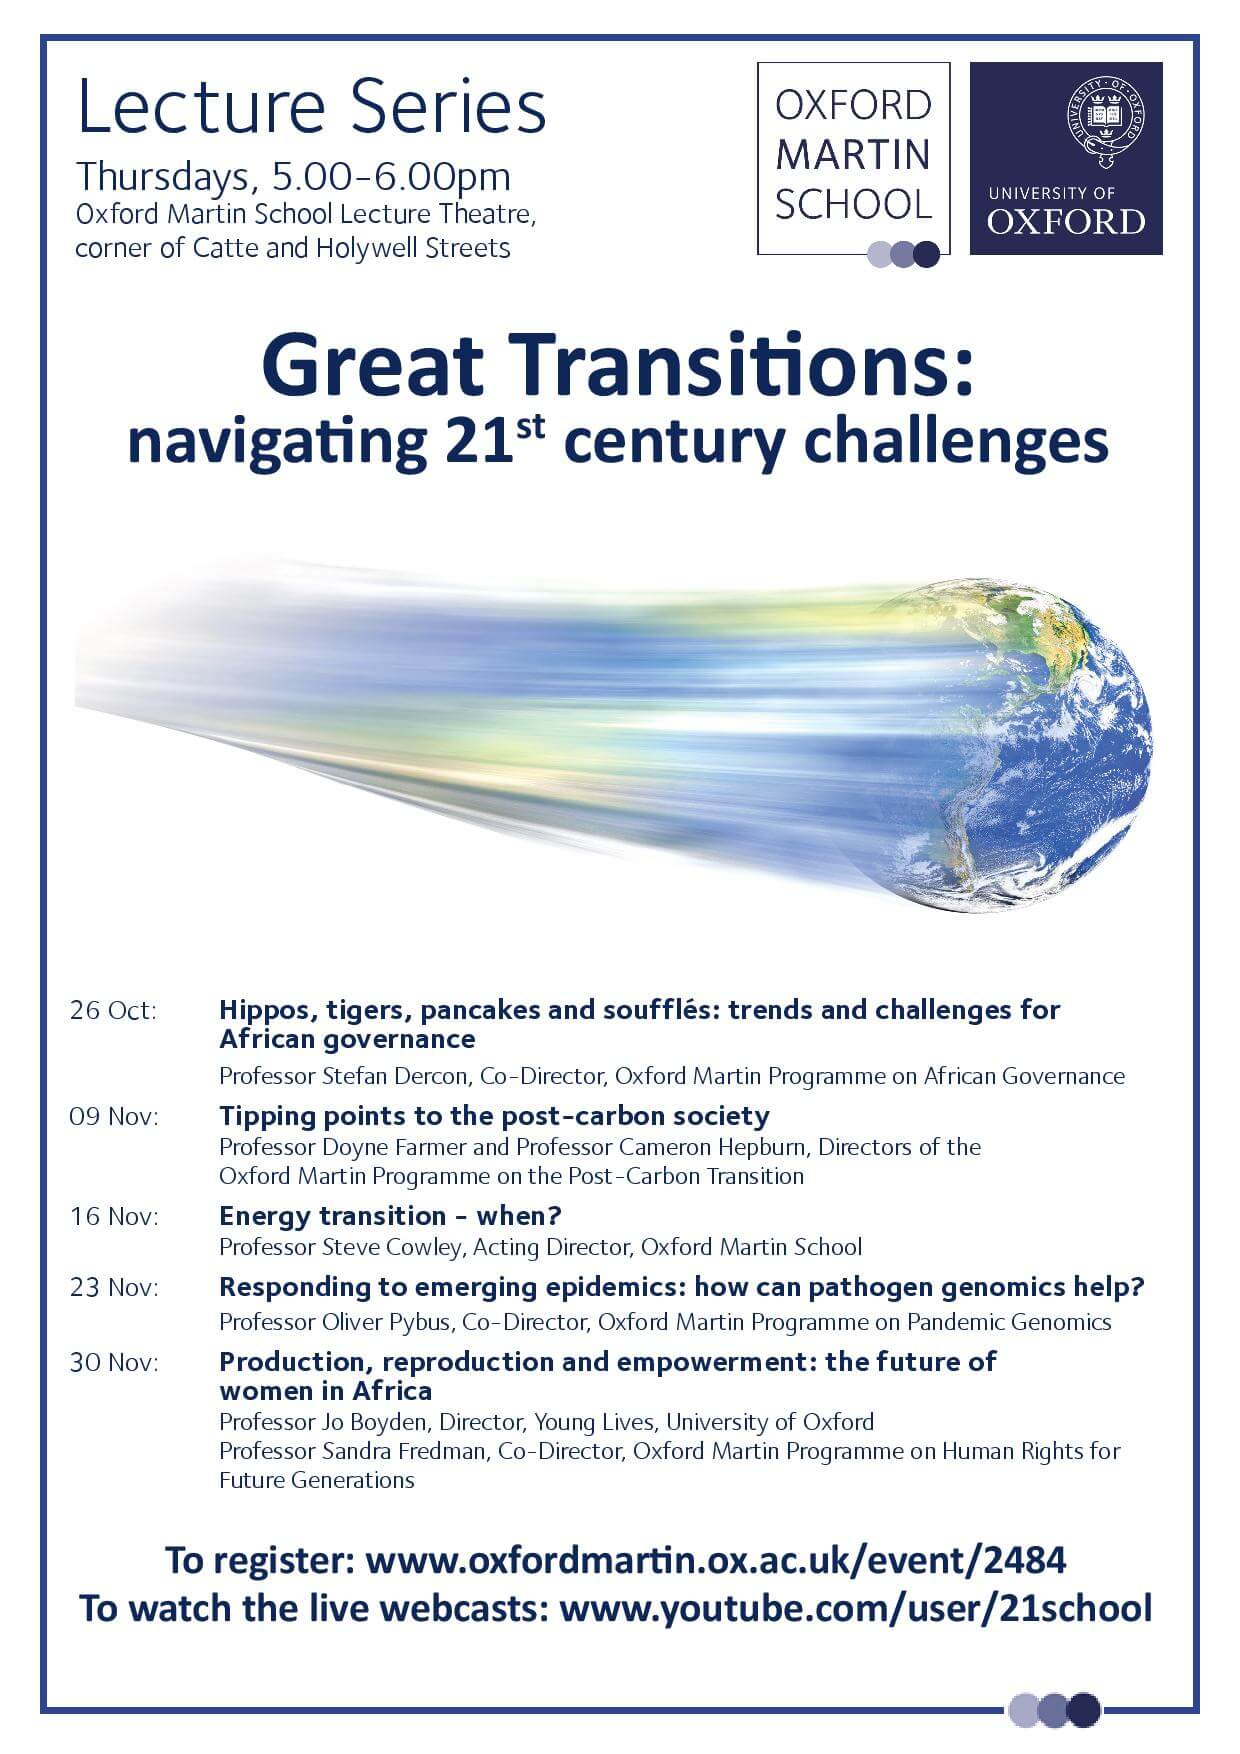 Oxford Martin School Lecture Series: Great Transitions-Navigating 21st Century Challenges